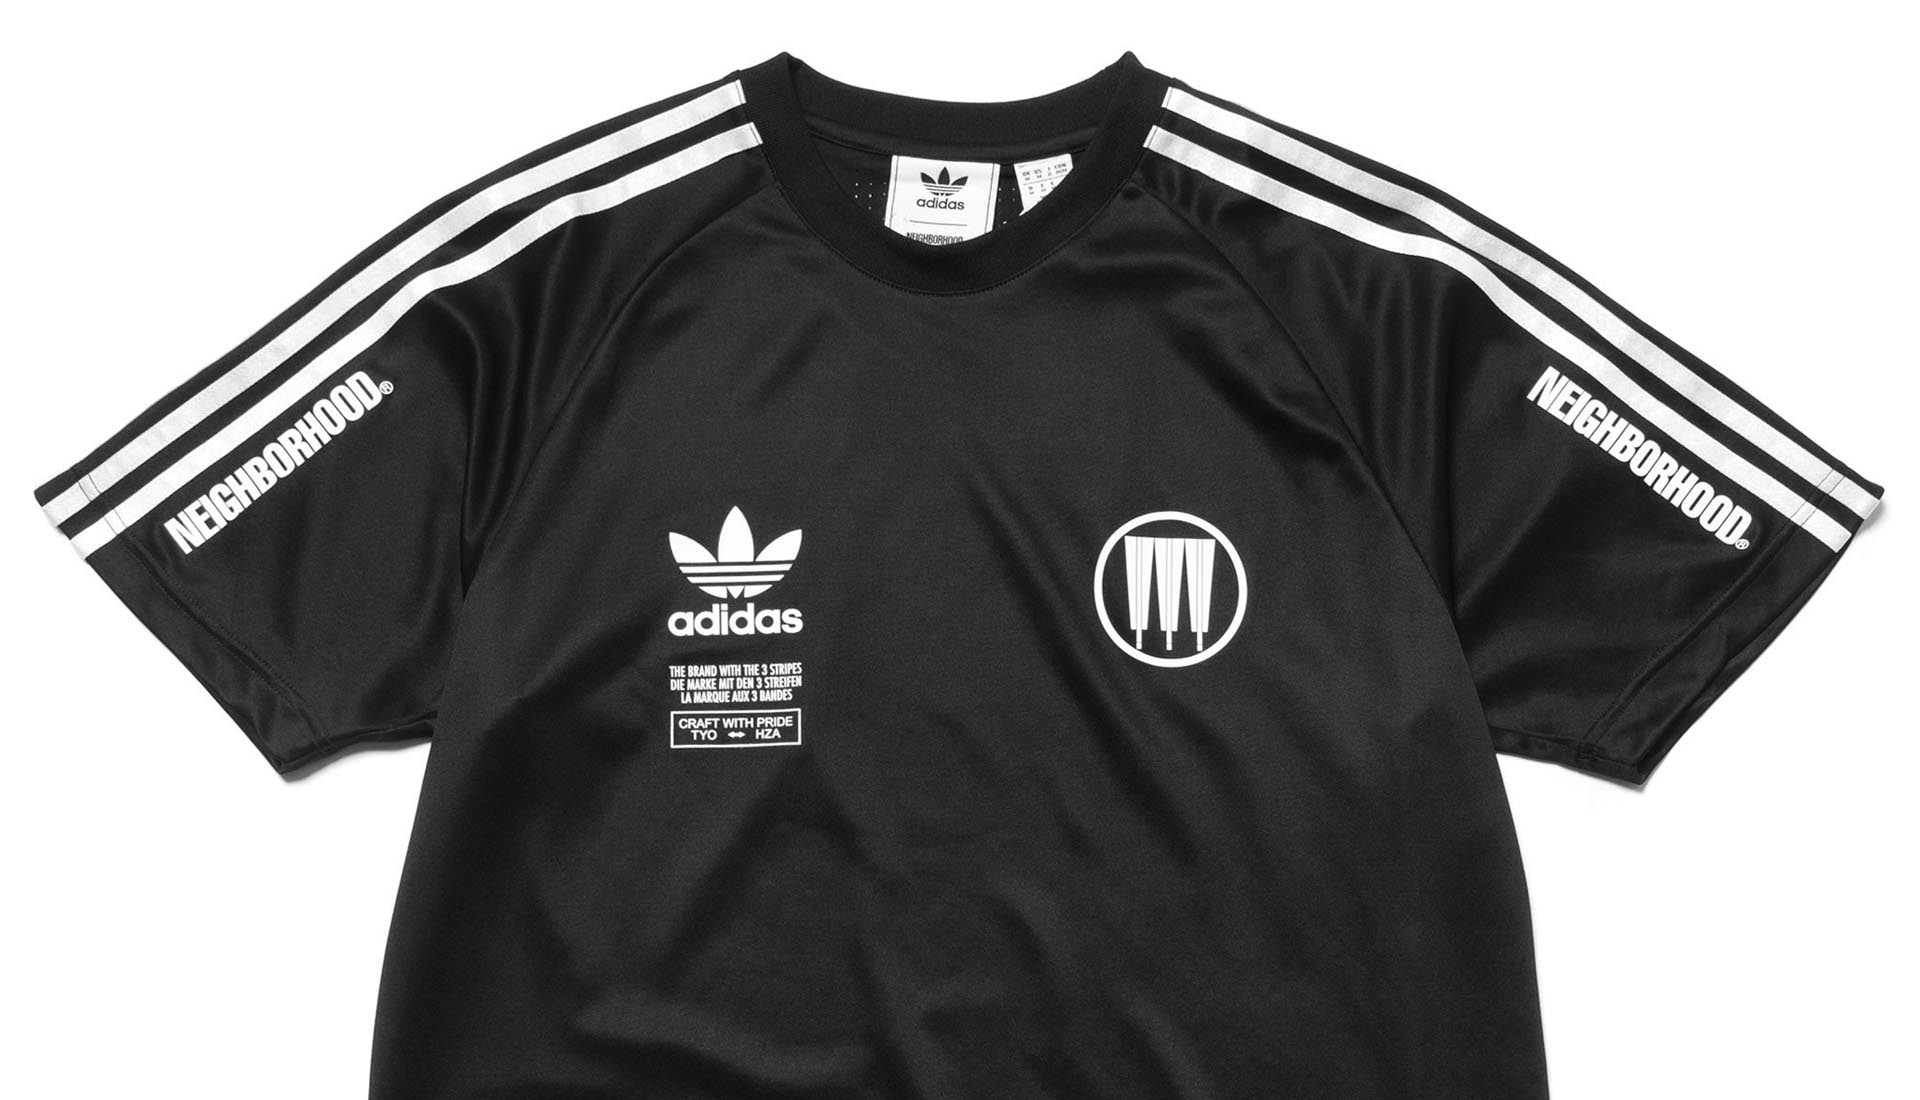 adidas Originals x NEIGHBORHOOD Game Jersey SoccerBible